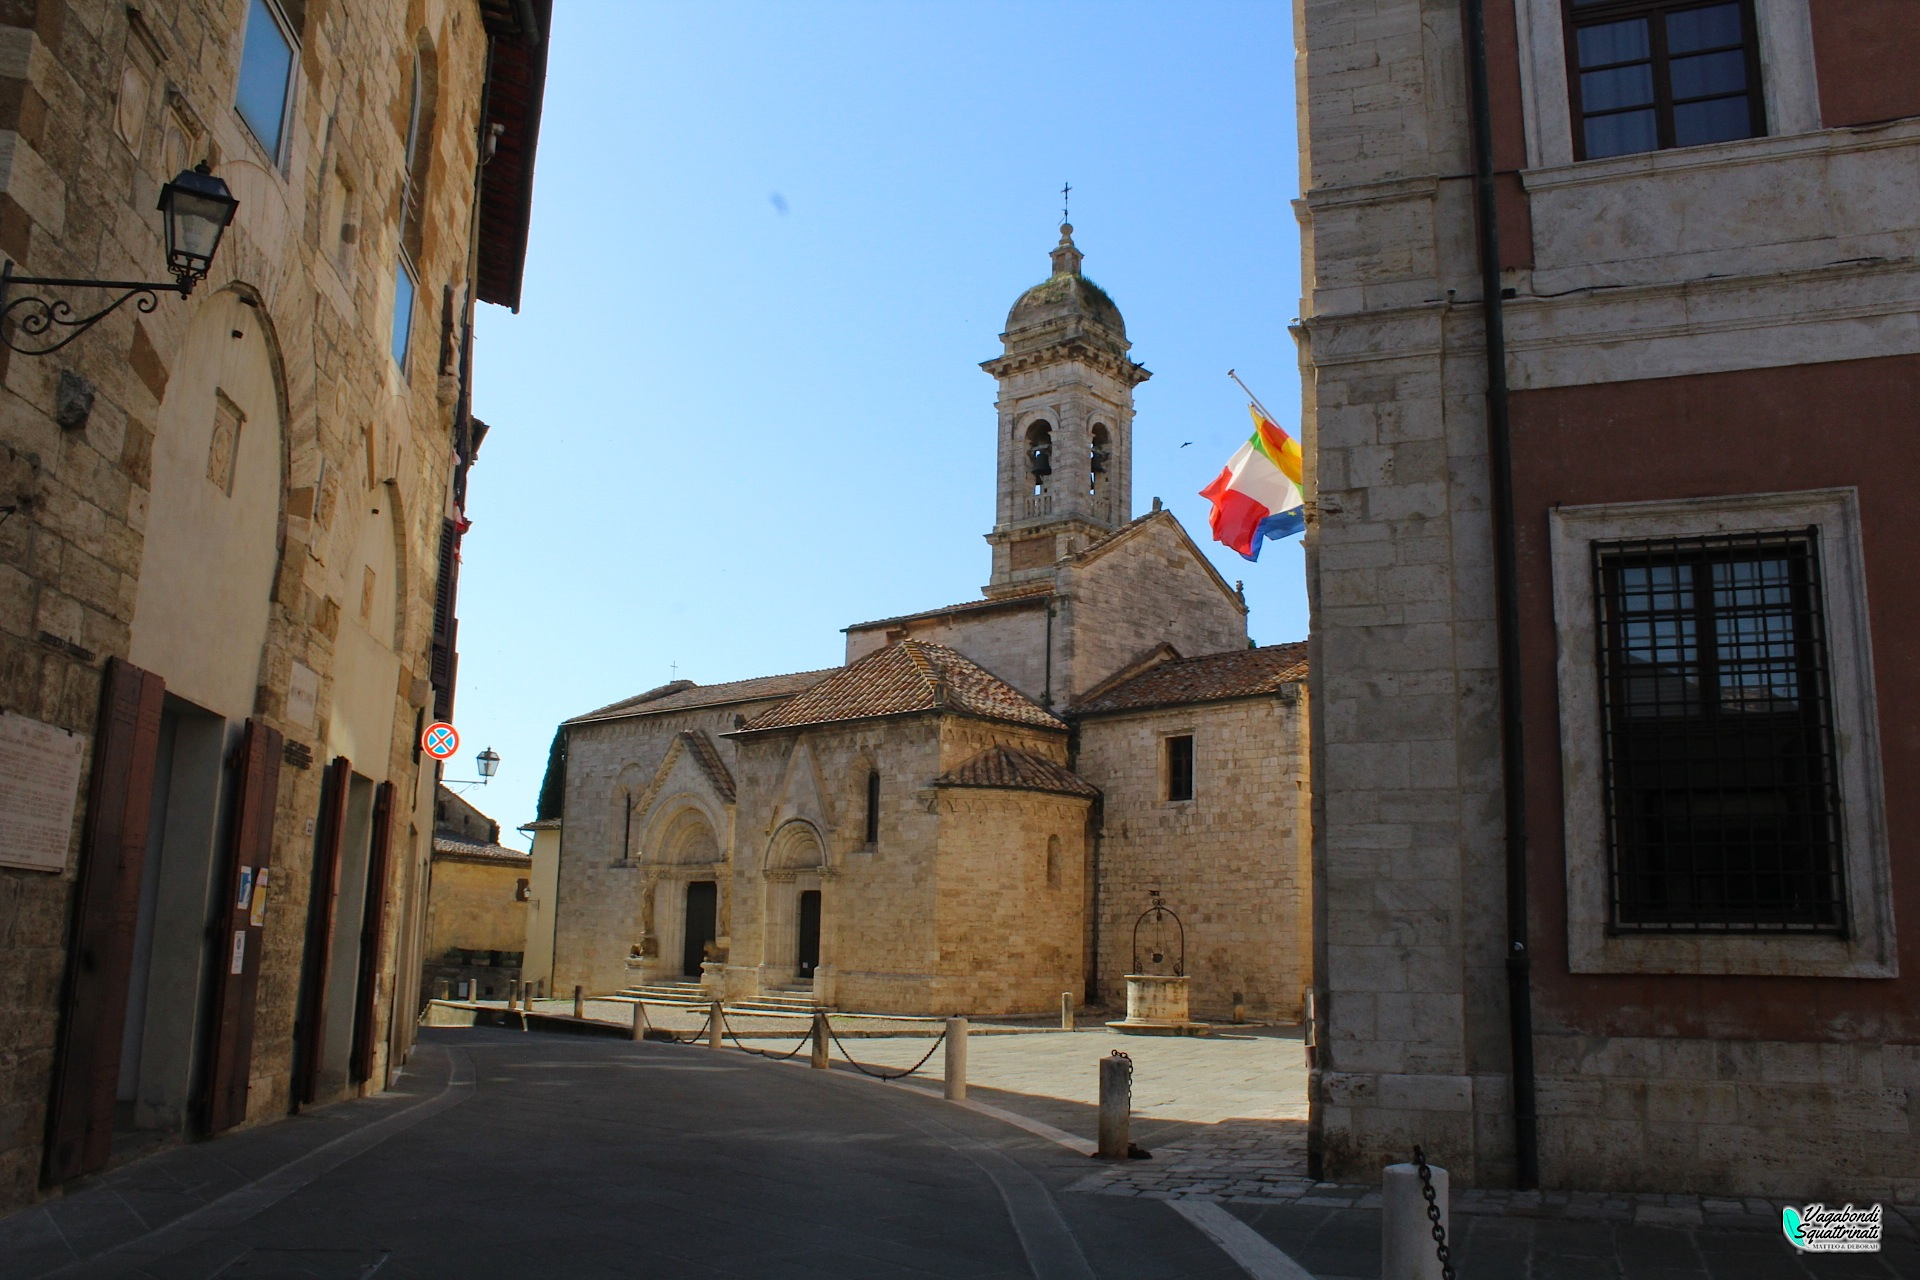 Cosa vedere in Val d'Orcia: san quirico d'orcia